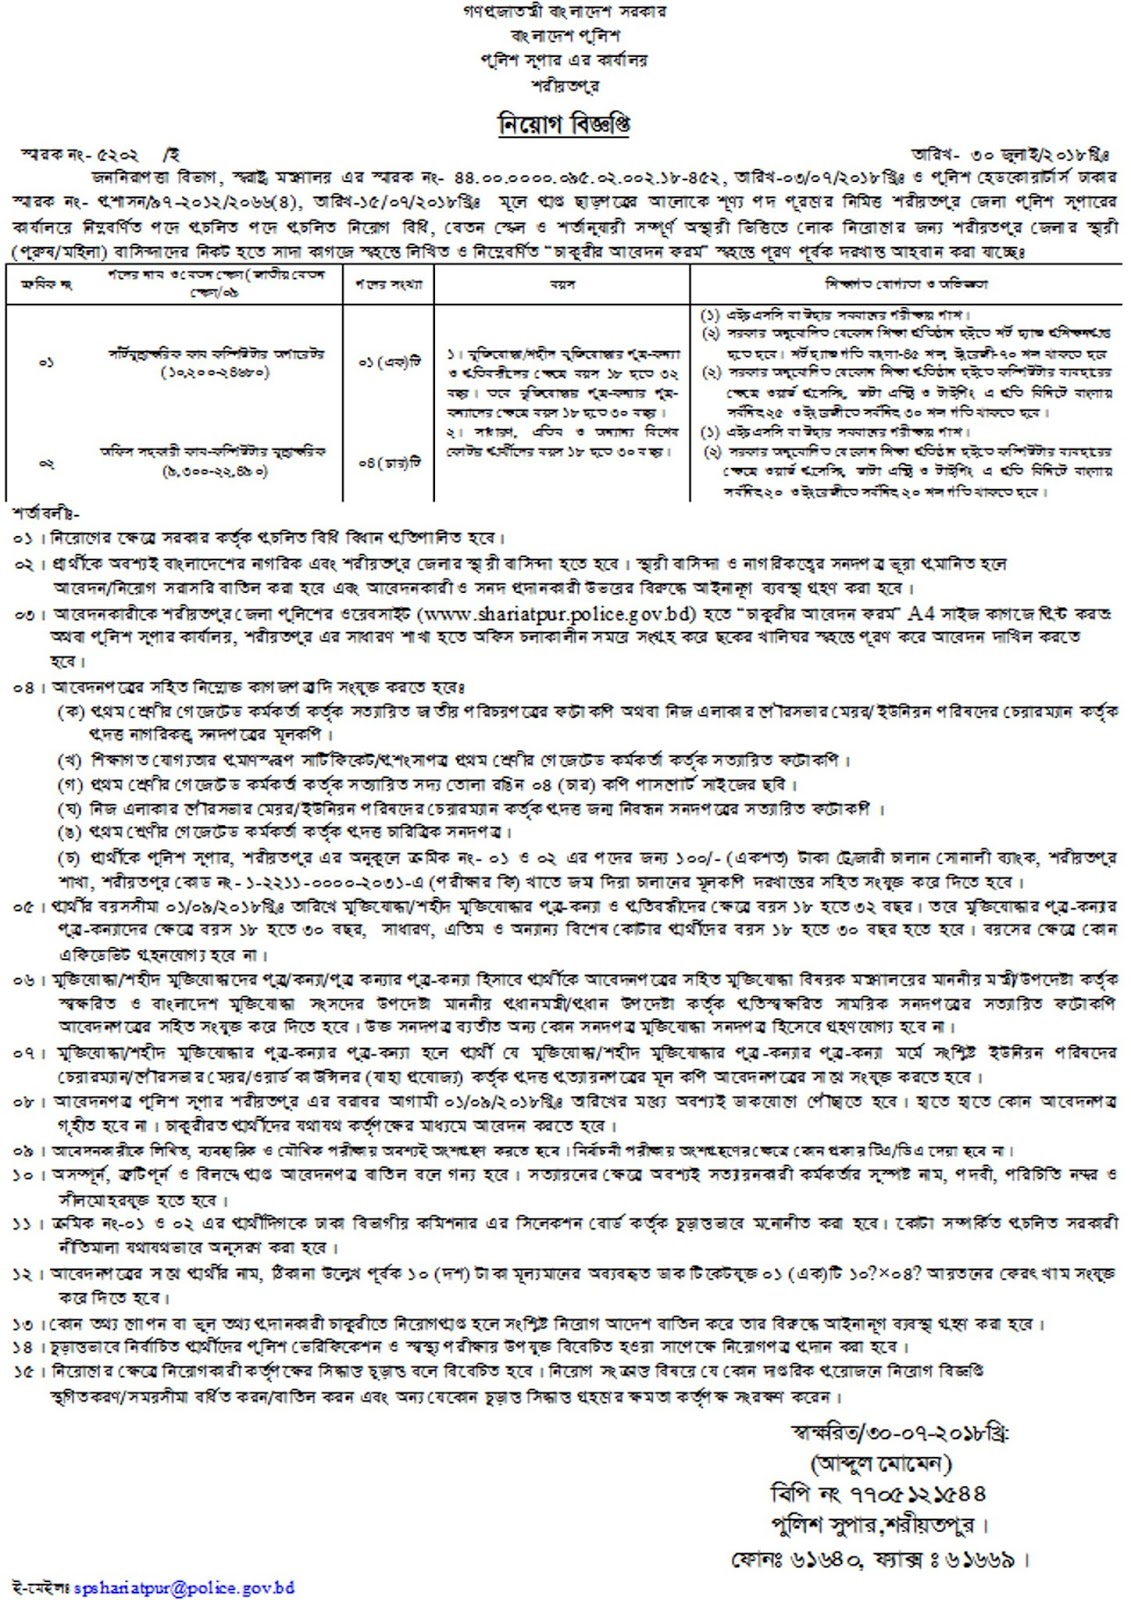 Shariatpur Police Super Office Job Circular 2018